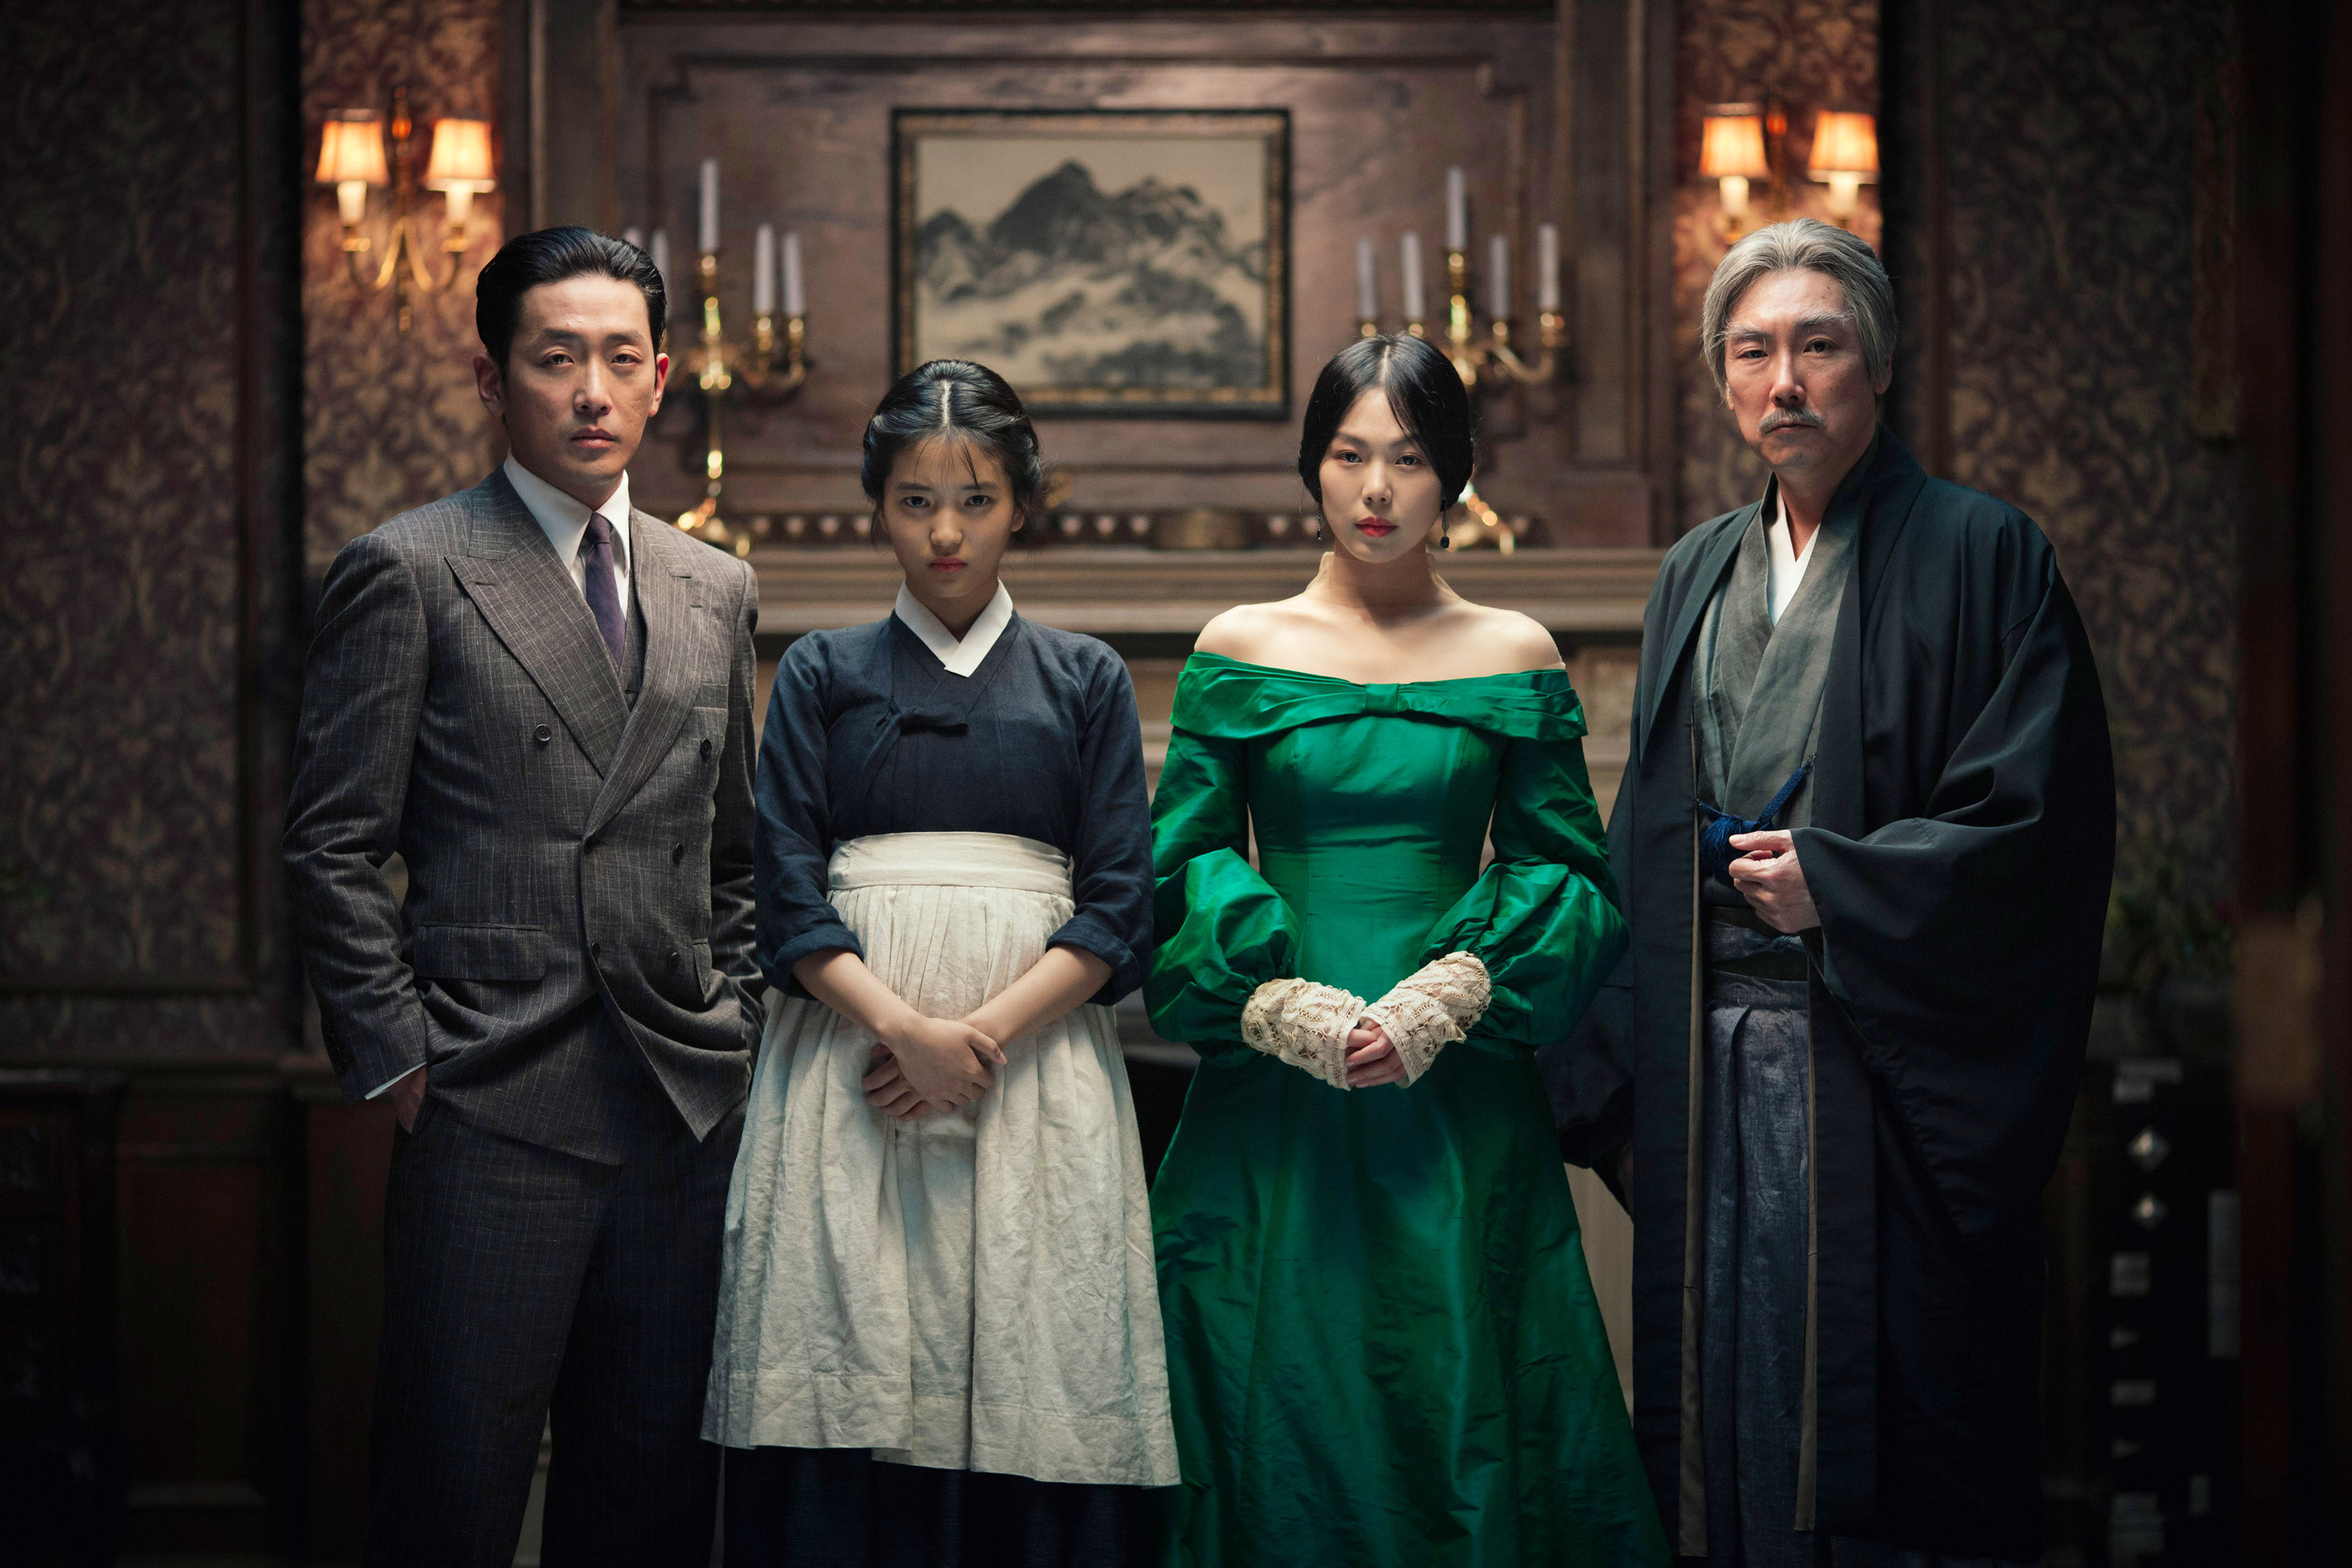 The count, the handmaiden, the heiress, and the uncle standing together